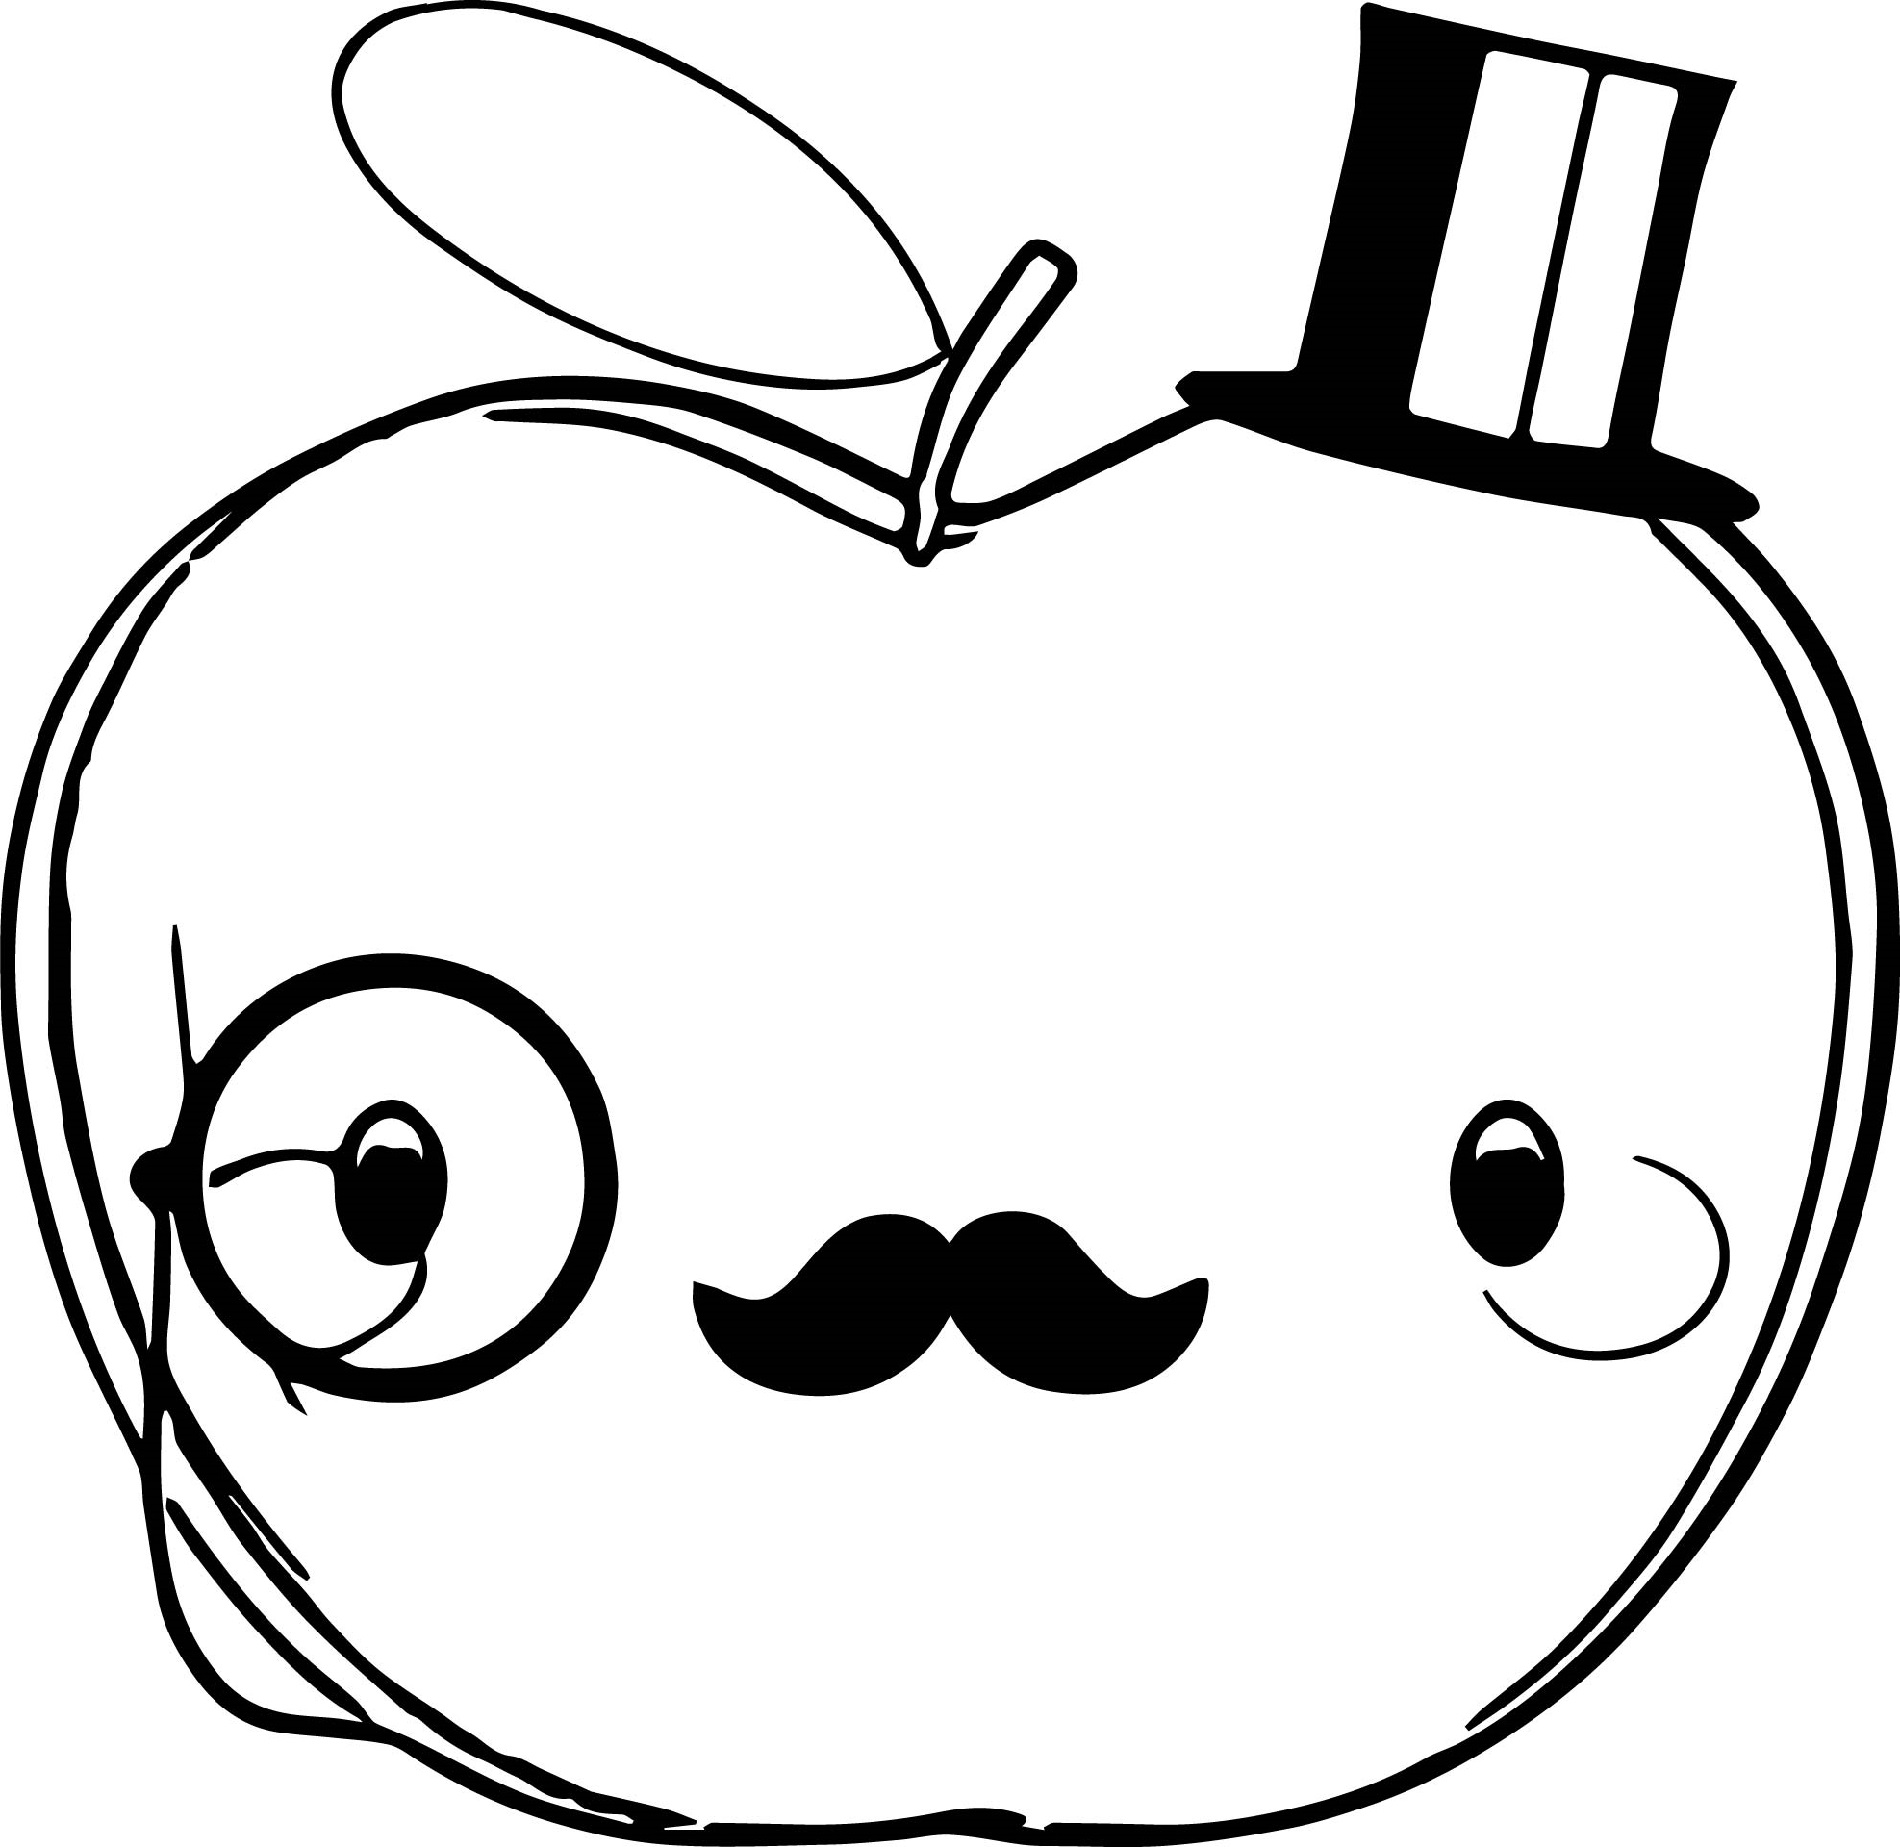 a for apple coloring page apple coloring pages bestappsforkidscom coloring page apple a for